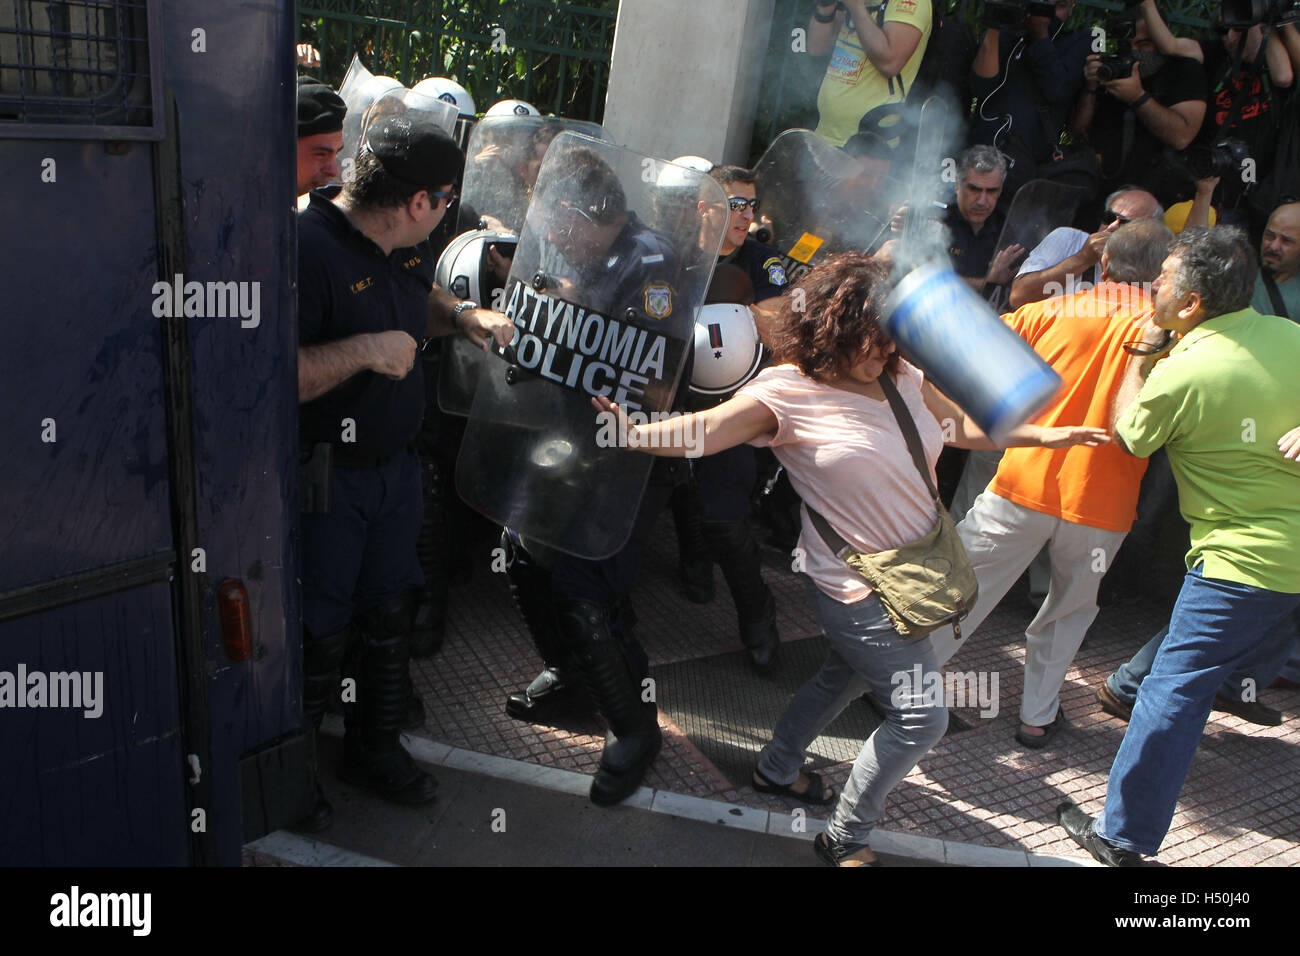 Elderly people clash with riot police during anti-austerity protest against pension cuts in central Athens near - Stock Image